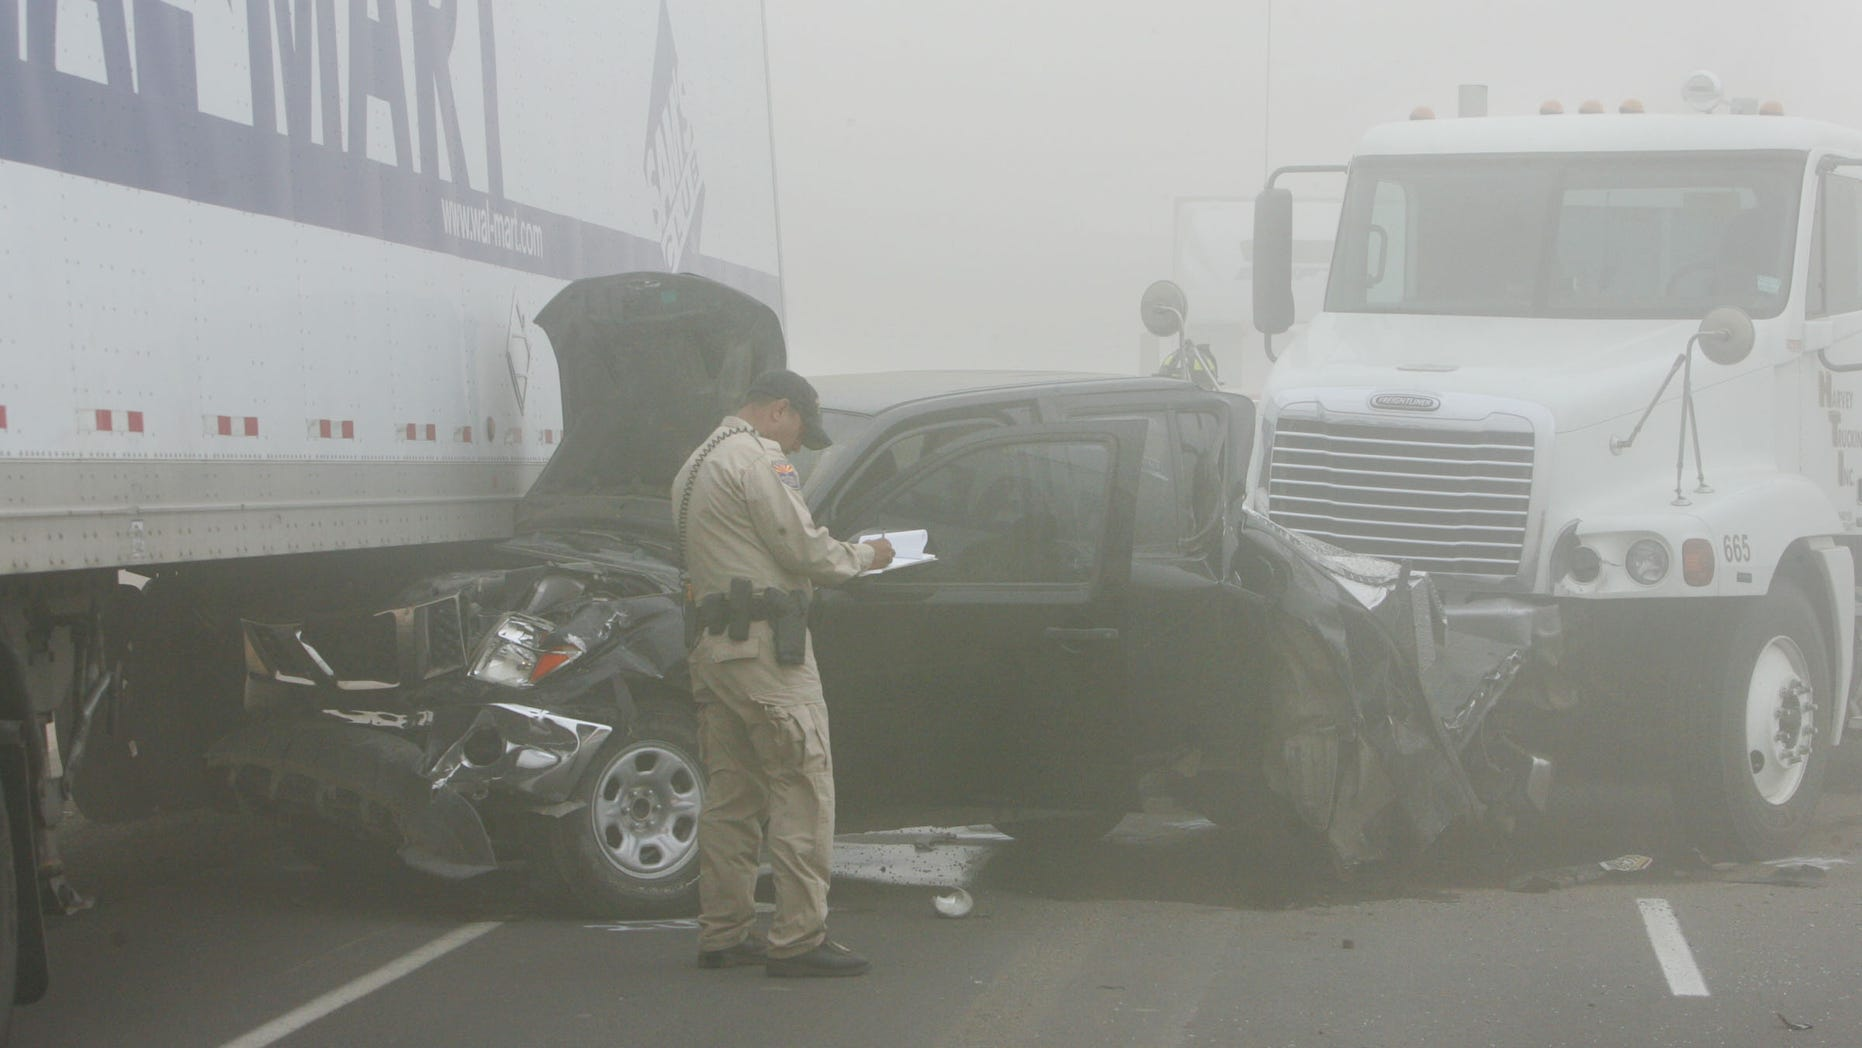 Oct. 4: An Arizona Departmaent of Public Safety Highway Patrol officer investigates the scene of a pileup caused by a dust storm on Interstate 10 west of Casa Grande, Ariz. A blinding dust storm rolled across the Arizona desert Tuesday, causing three pileups involving dozens of vehicles on the major interstate. One man was killed and at least 15 other people were injured, authorities said.